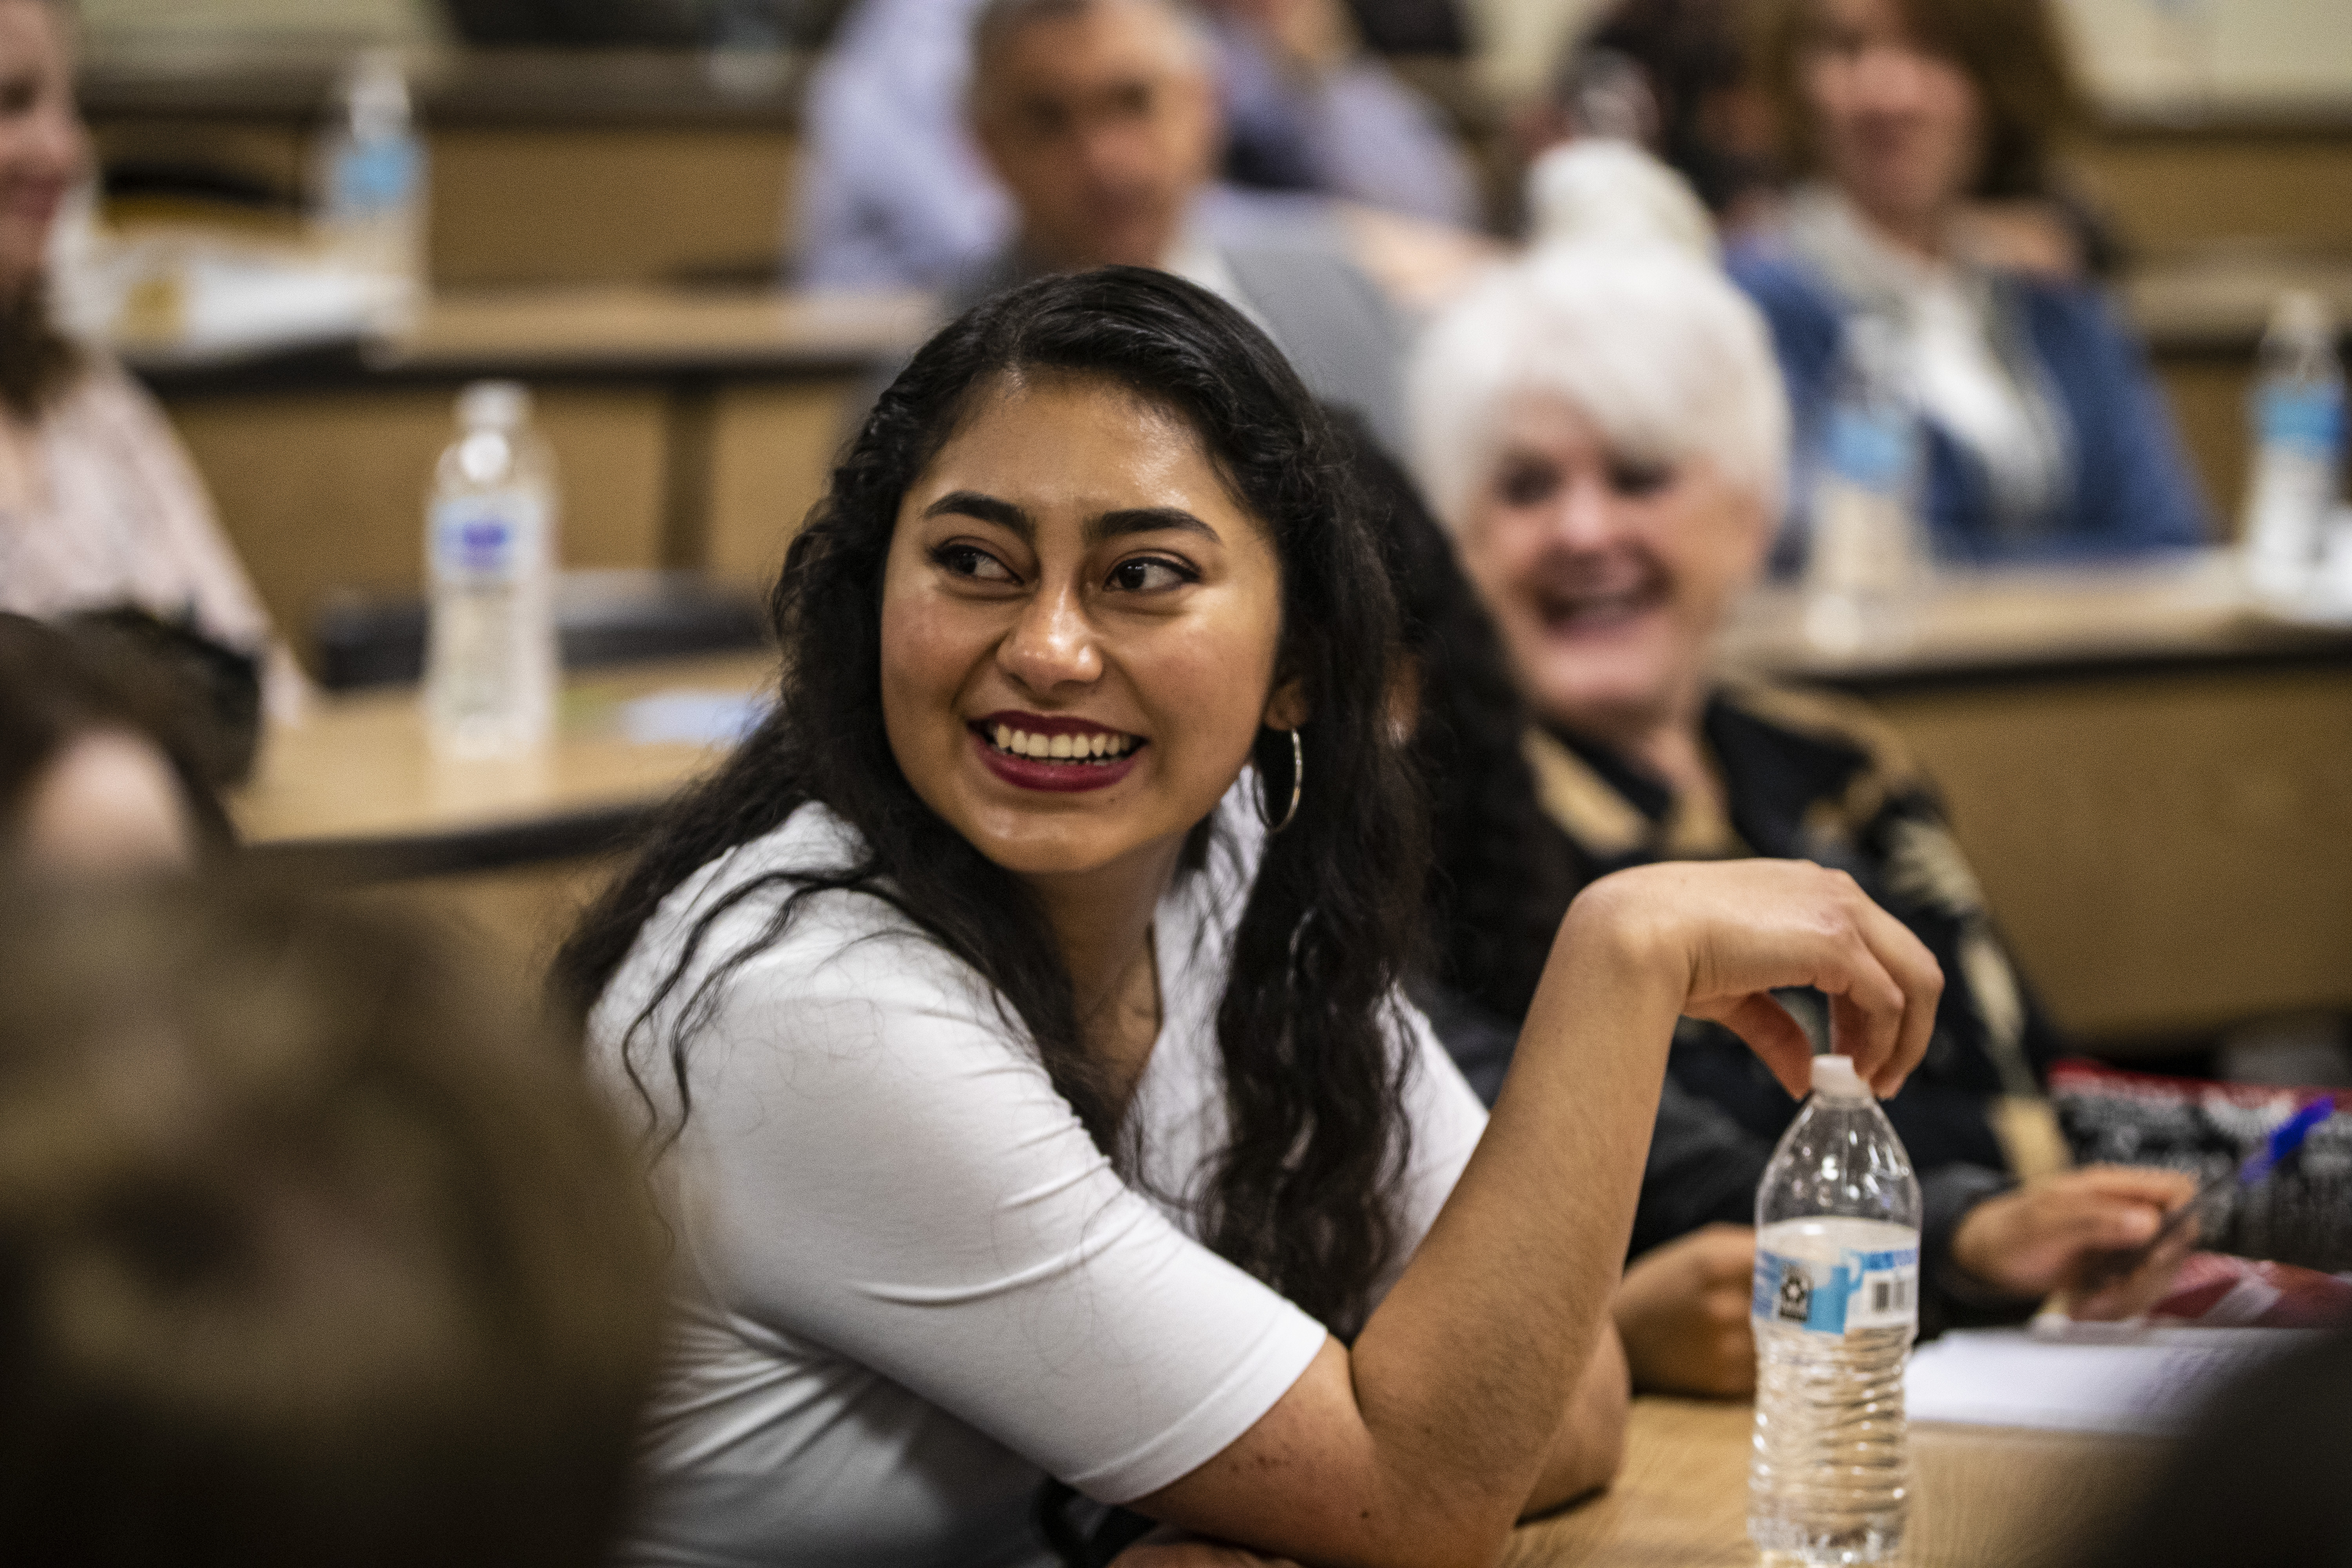 Adriana Morales Rios enjoys historic YSA conference on May 4, 2019, at the United States Military Academy in West Point, New York.